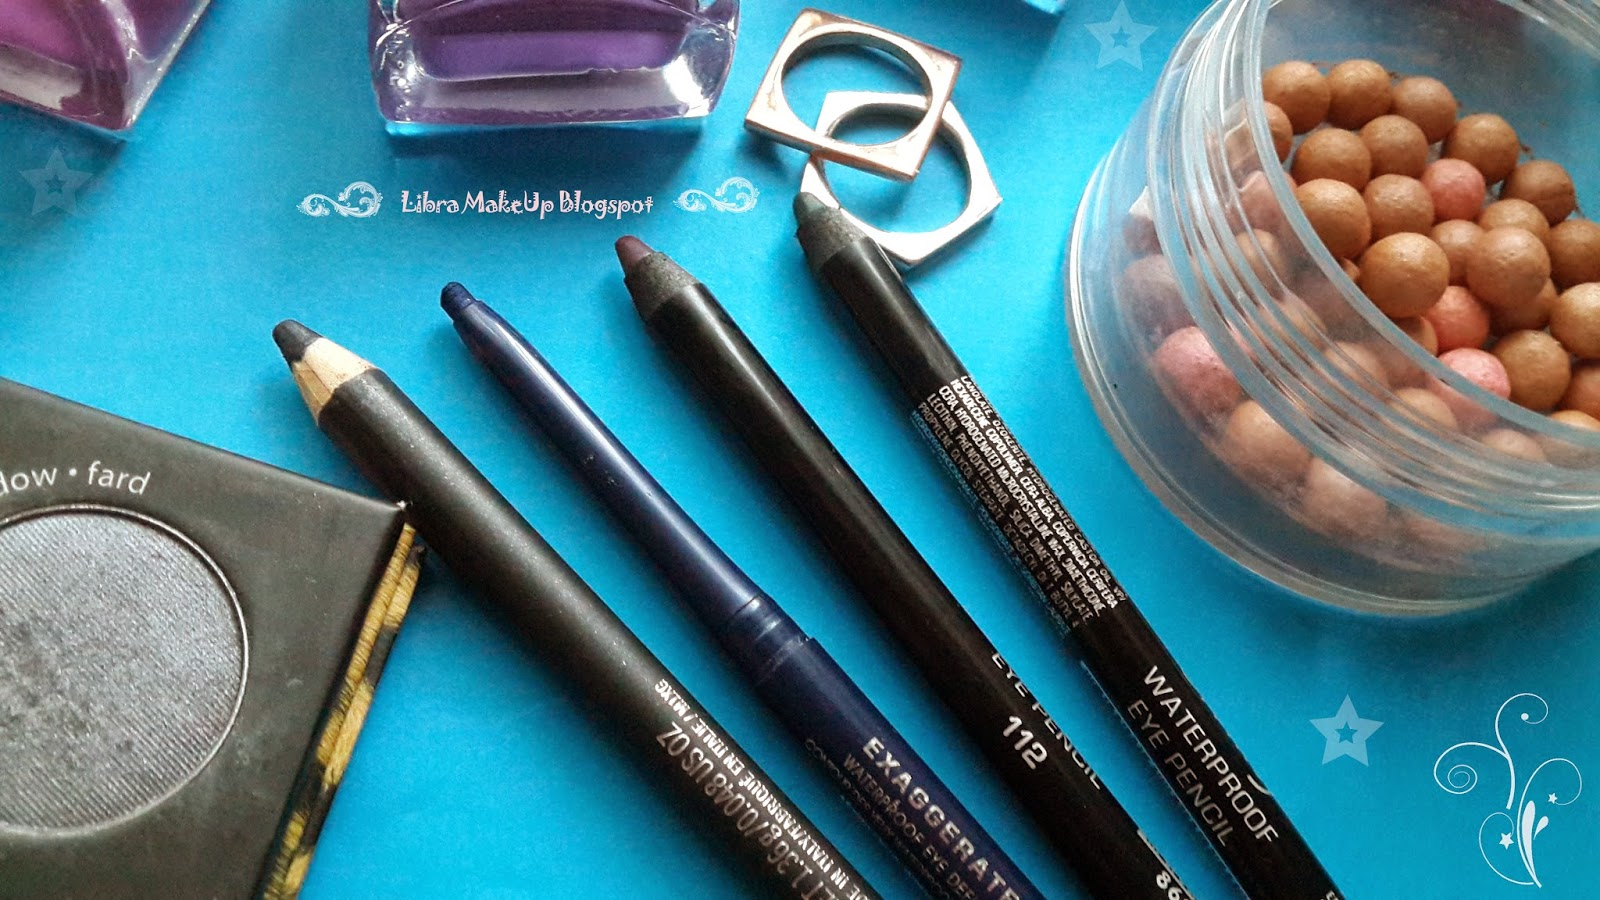 rimmel london deep blue eye pencil, black eye pencil, siyah göz kalemi, mac eye pencil, mac black eye pencil, mac siyah göz kalemi, mor göz kalemi,